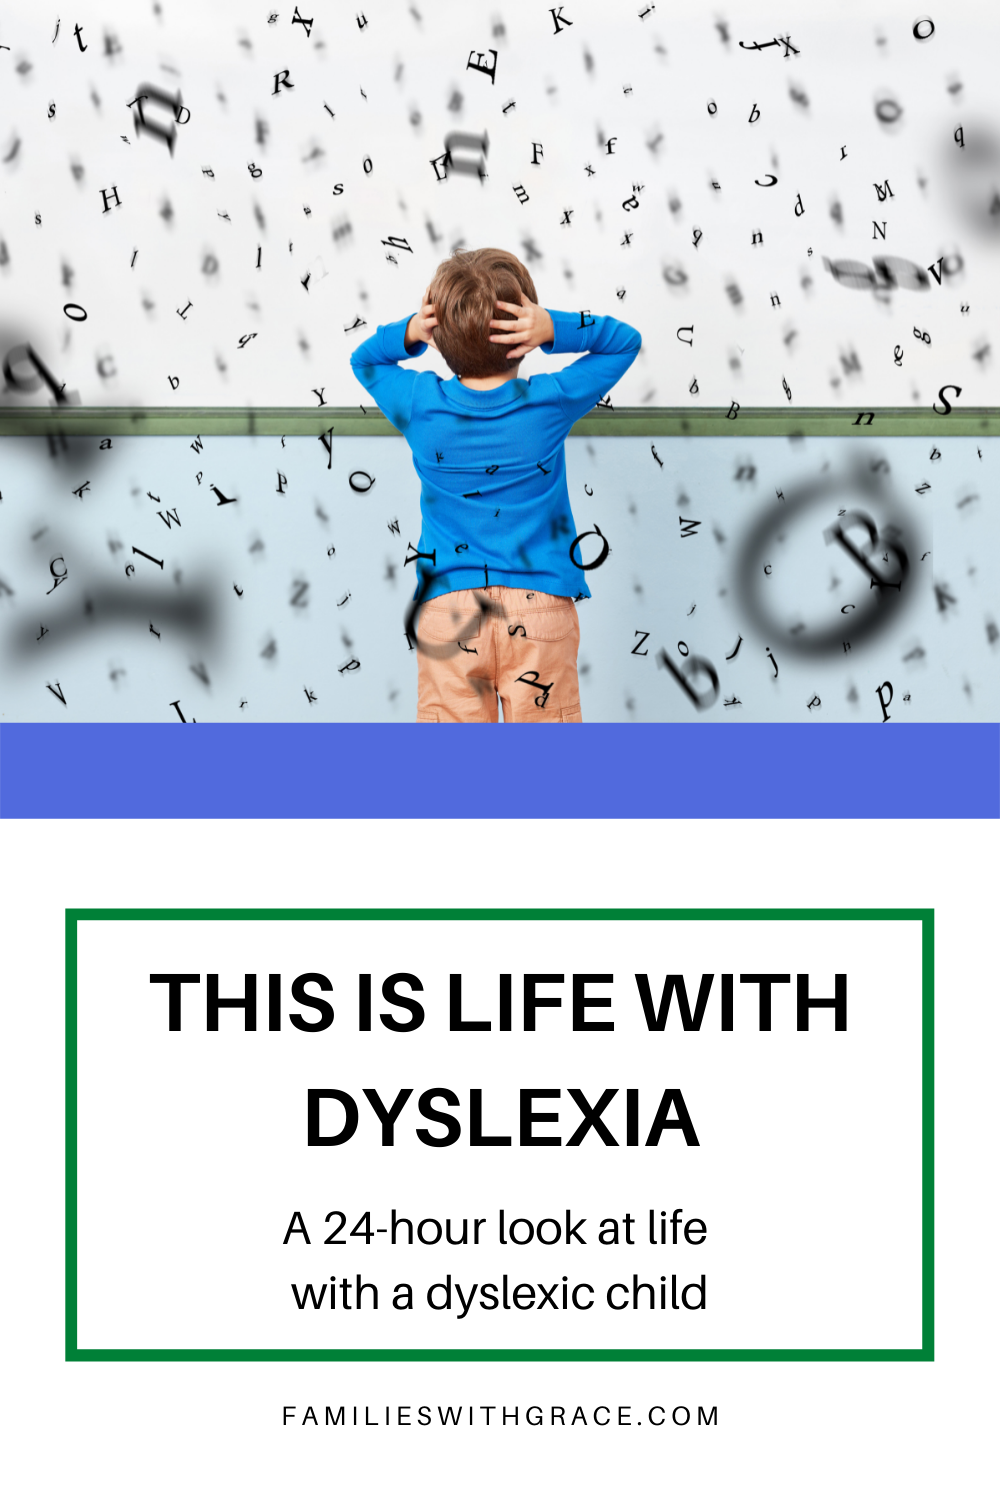 This is life with dyslexia